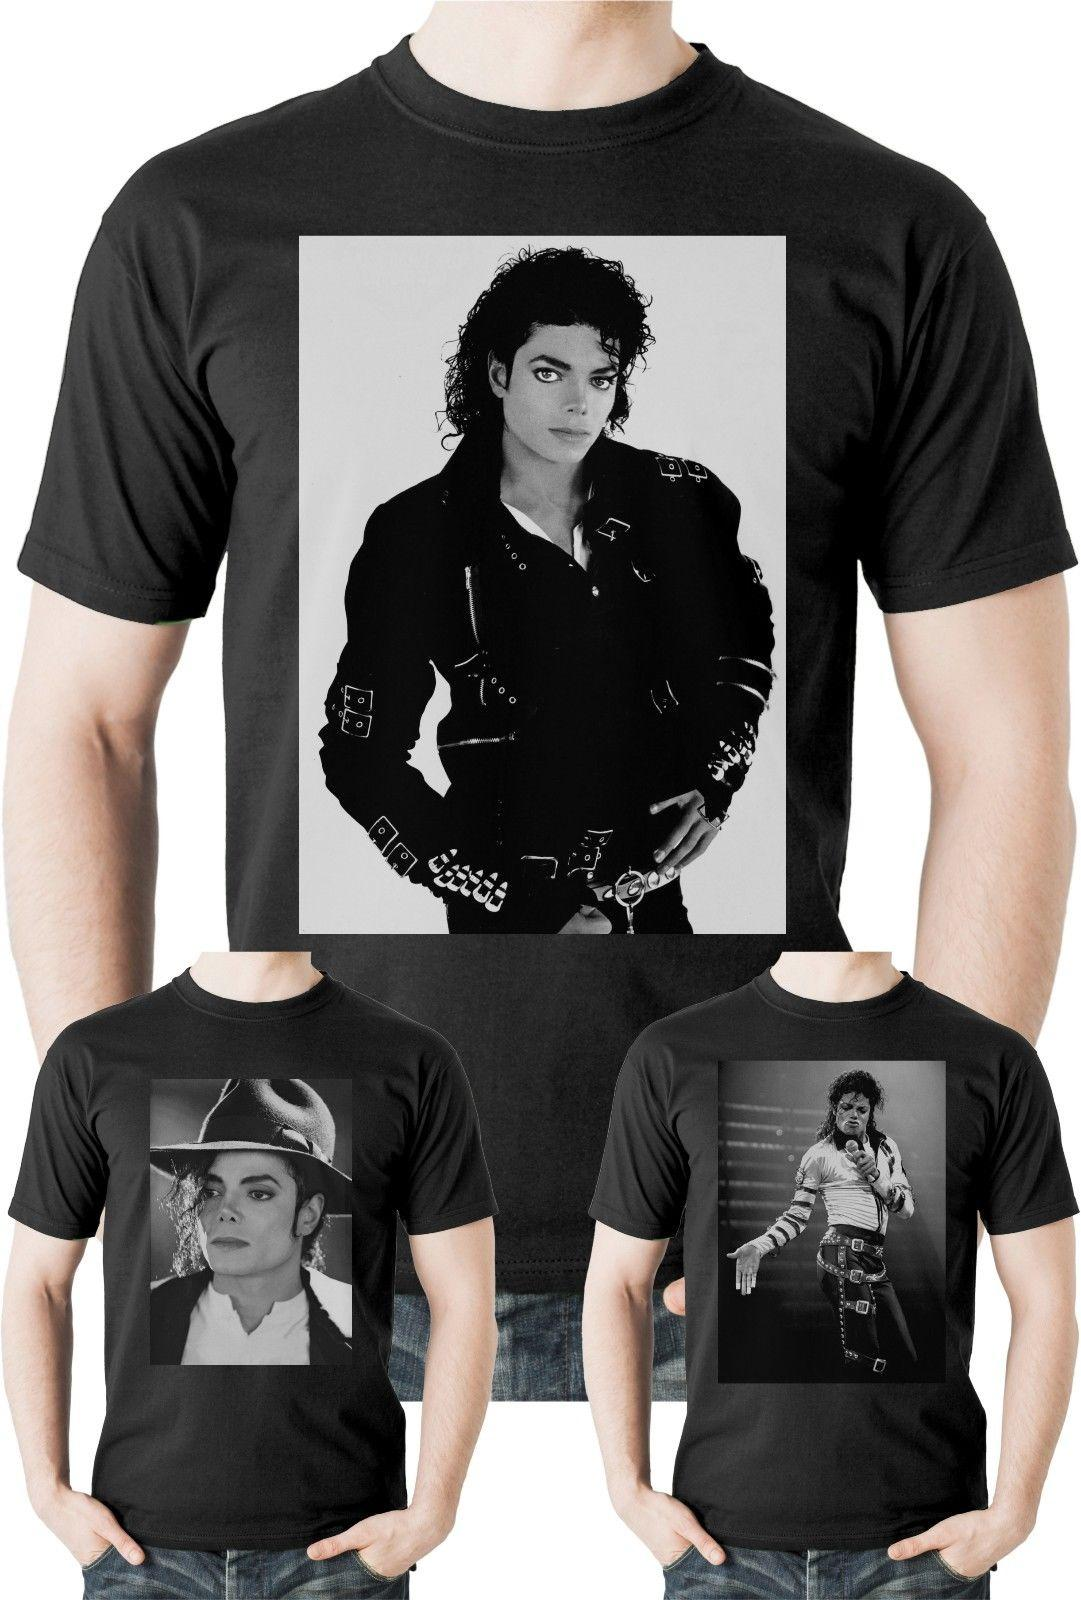 75a84bfe Michael Jackson T Shirt King Of Pop Thriller Bad Legend Top Tee Music MJ  UnisexFunny Unisex Tee Cool Tee Shirts Cool Tees From Topclassaa, $12.96|  DHgate.